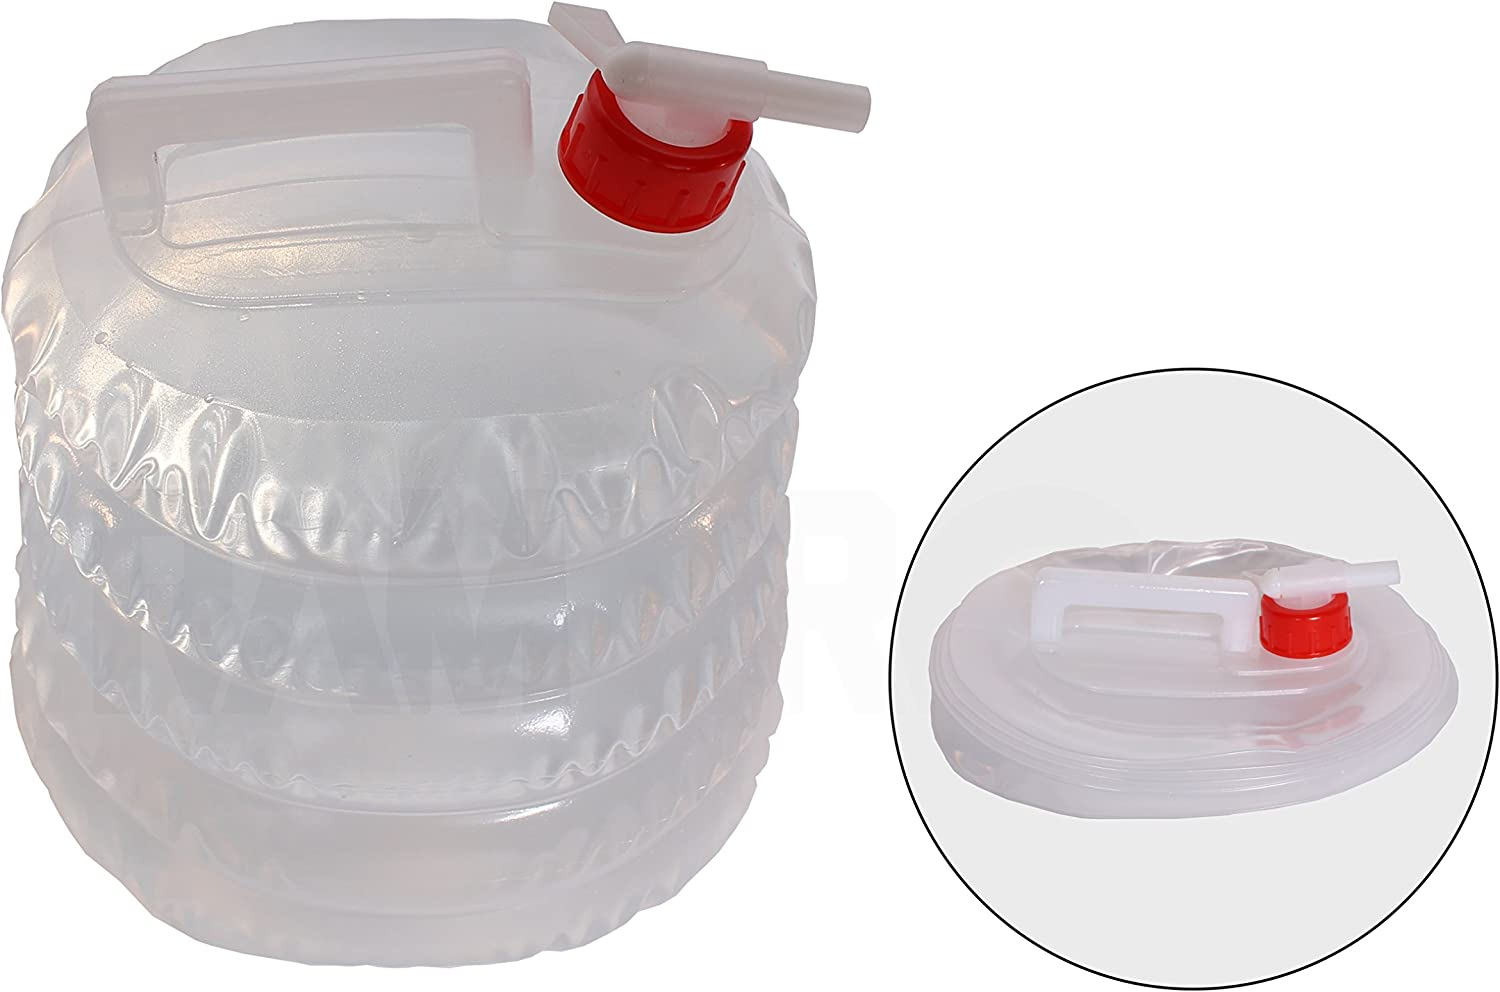 Collapsible Water Jug ( 5 Quarts / 1.25ガロン)キャンプ、ハイキング、ハンティング、釣り、登山、緊急災害キット& – Water Shut注ぎ口